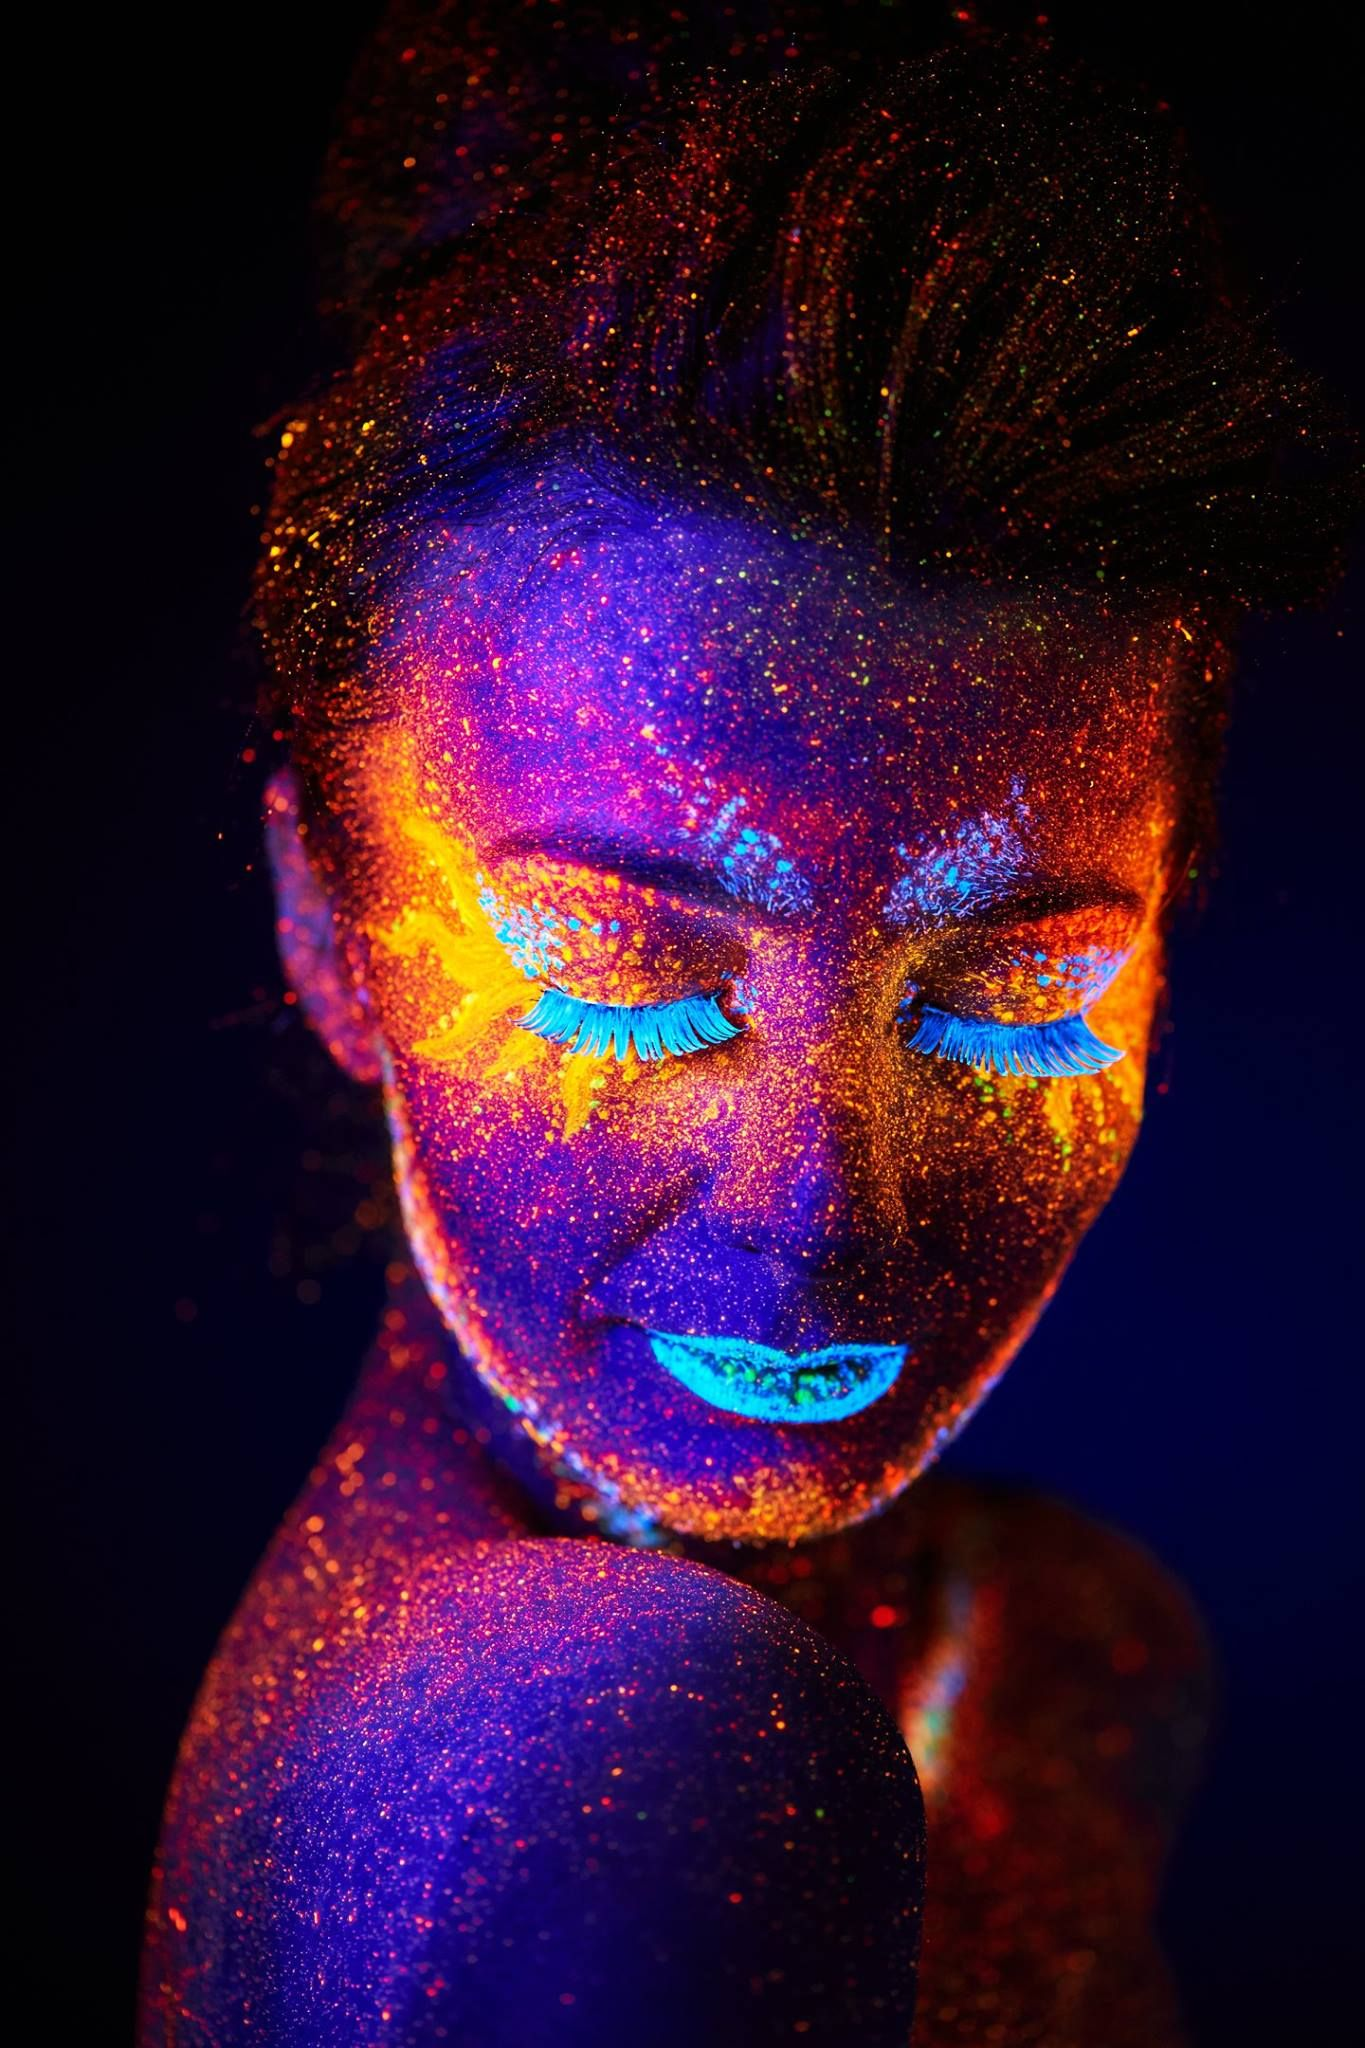 All humans have the ability to see ultraviolet light, but ...